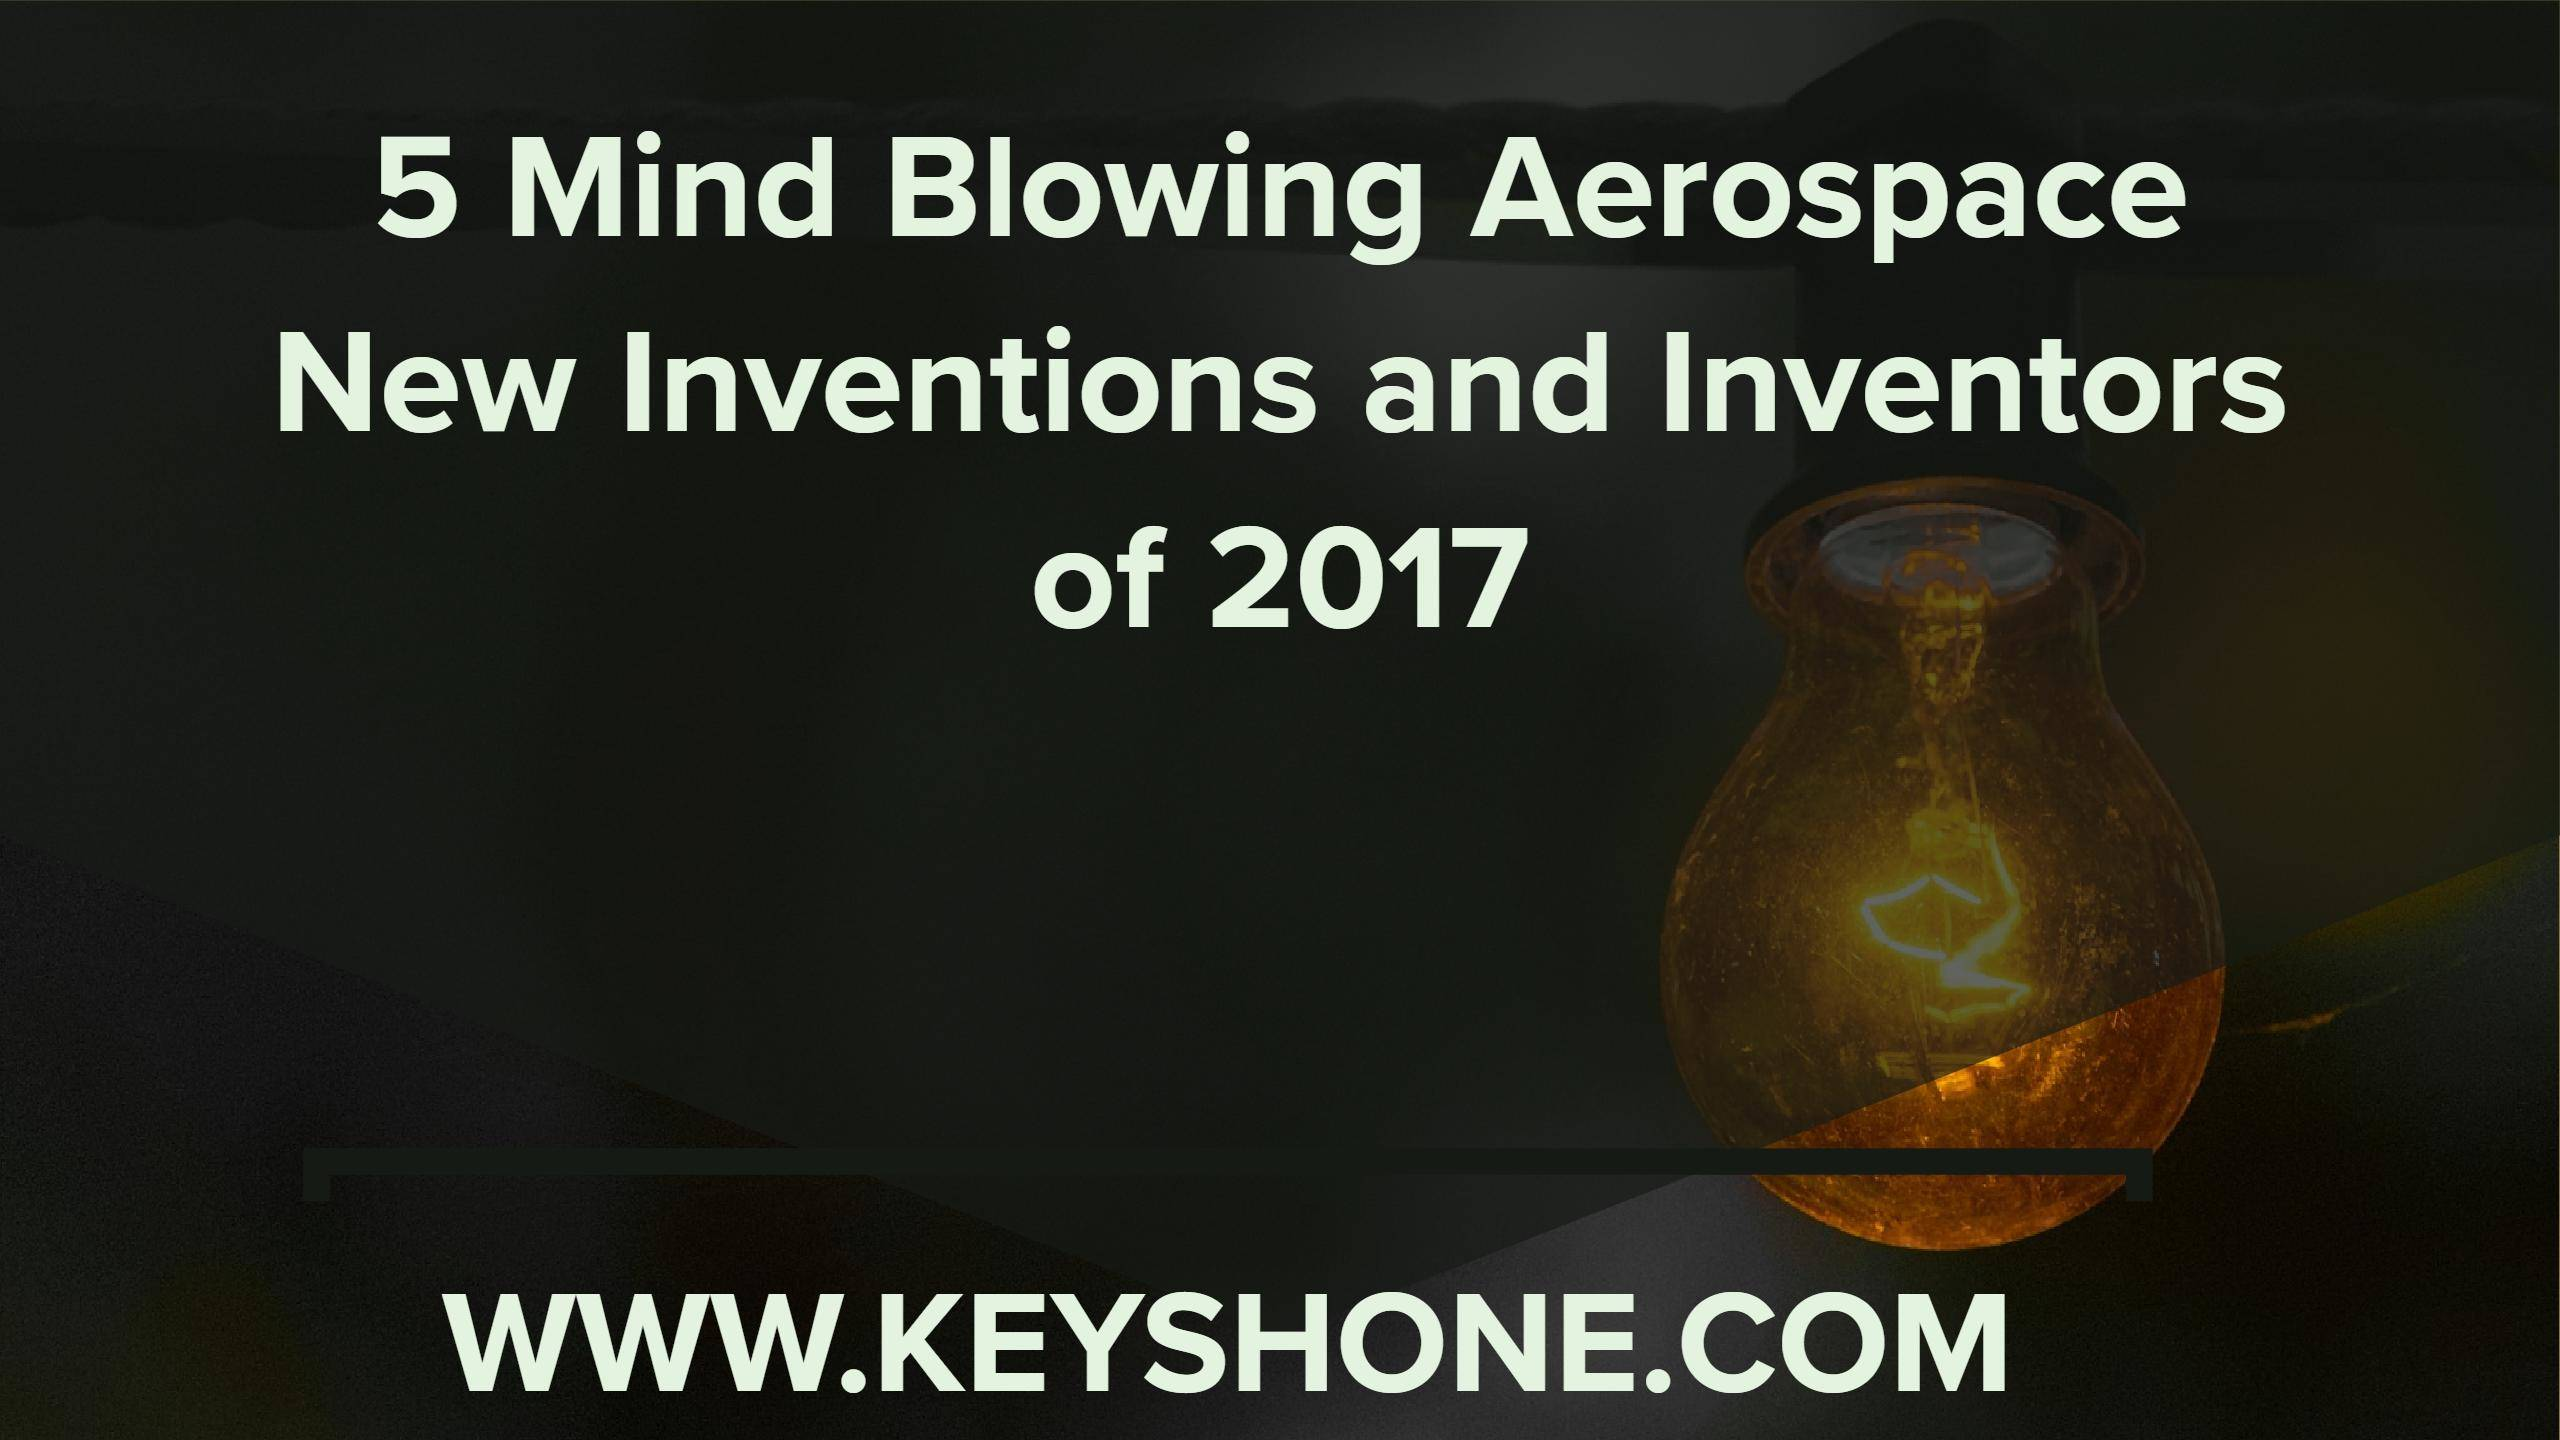 5 mind blowing aerospace new inventions and inventors of 2017